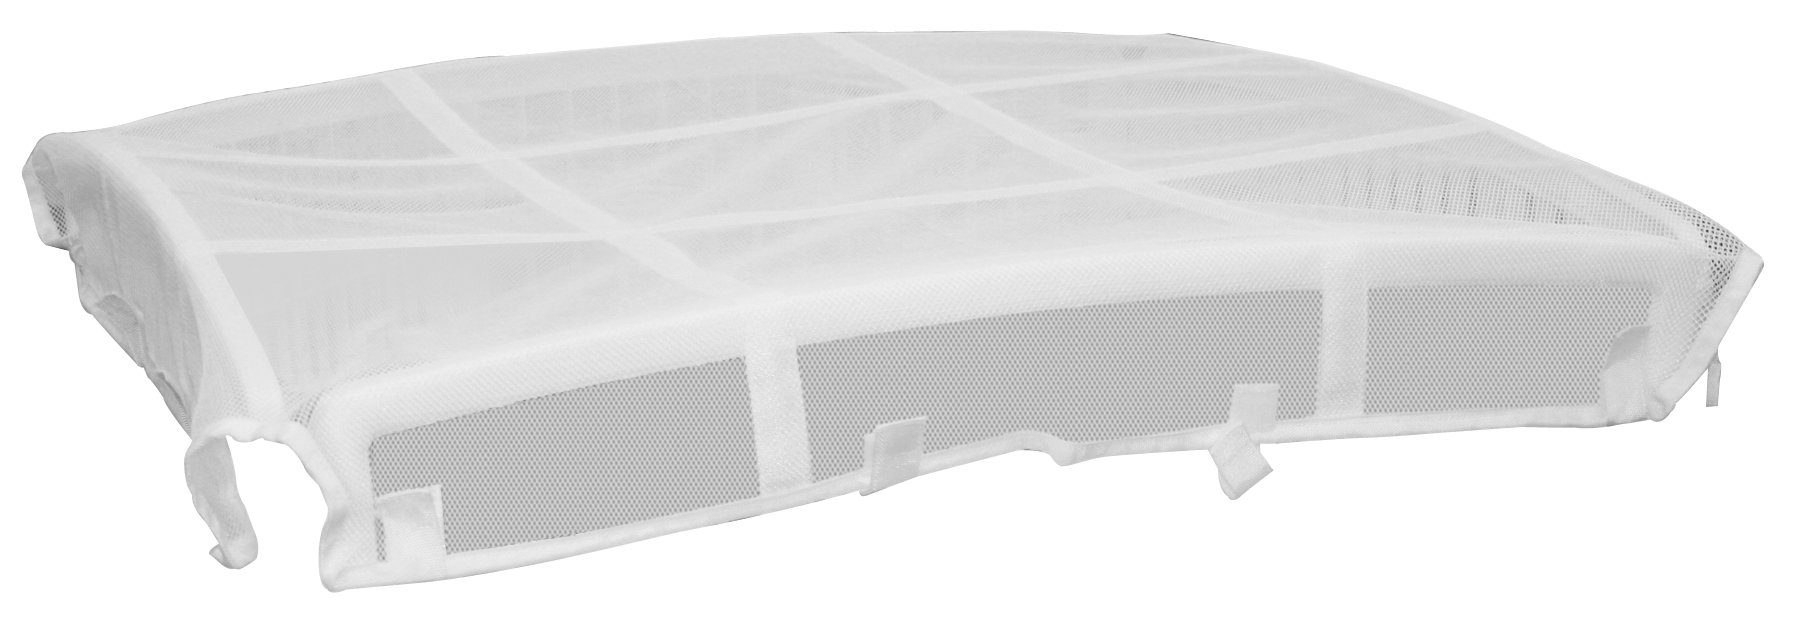 IRIS Mesh Security Roof, designed for use with the IRIS 24'' 4-Panel Pet Playpen